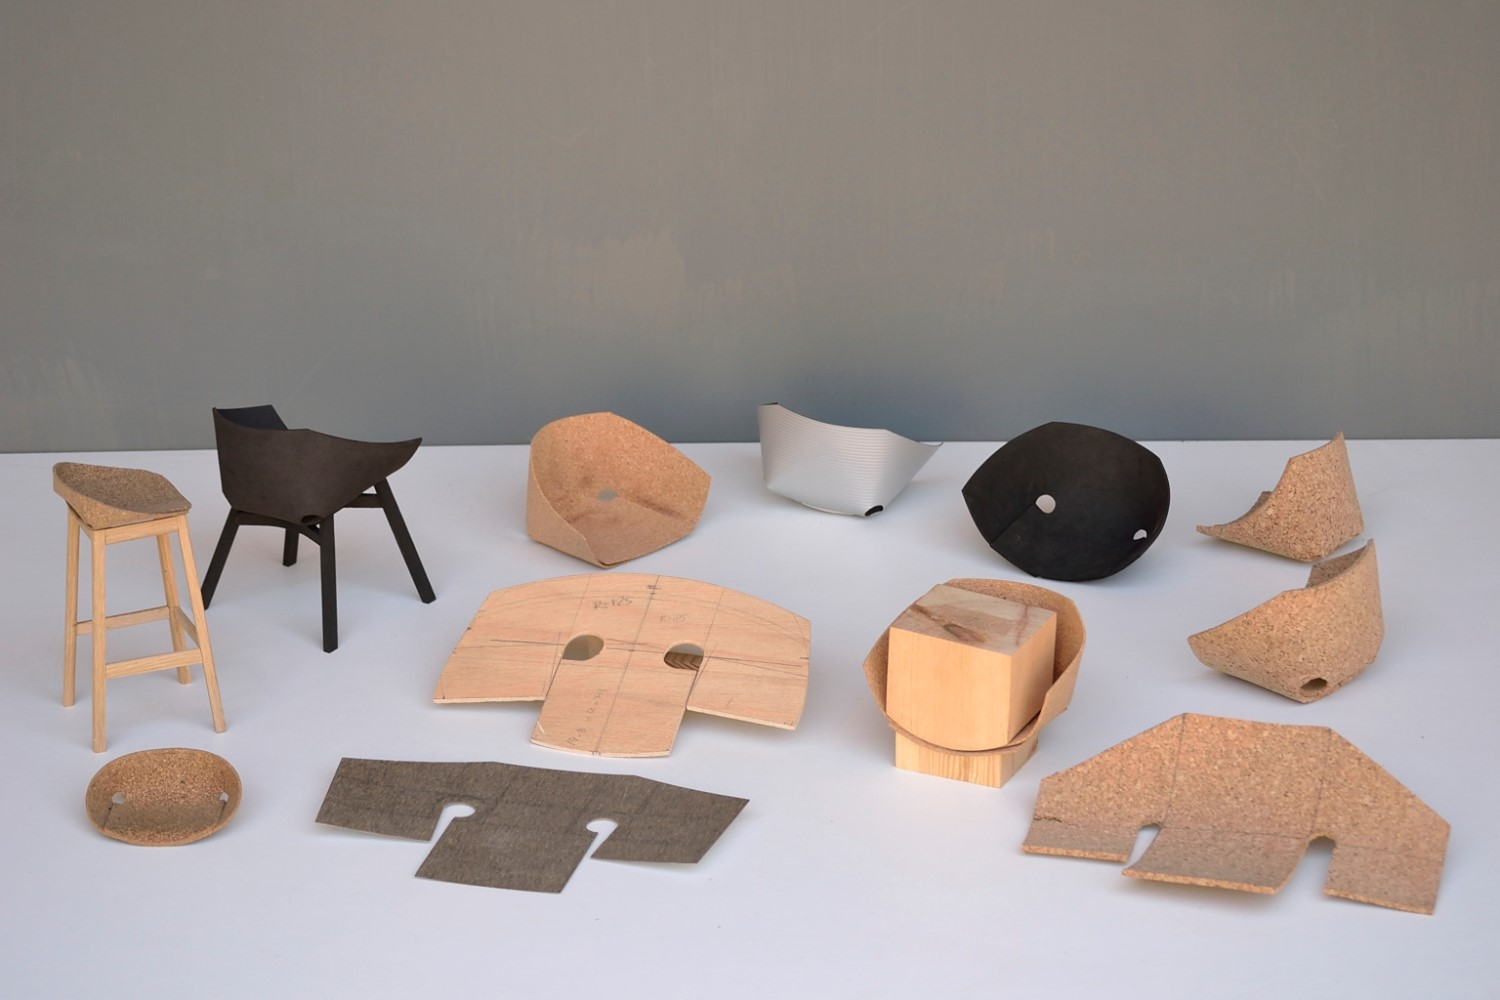 Scale models were used to develop the  flat and finished shape of  Carlos Otega's 'Corkigami'chair.